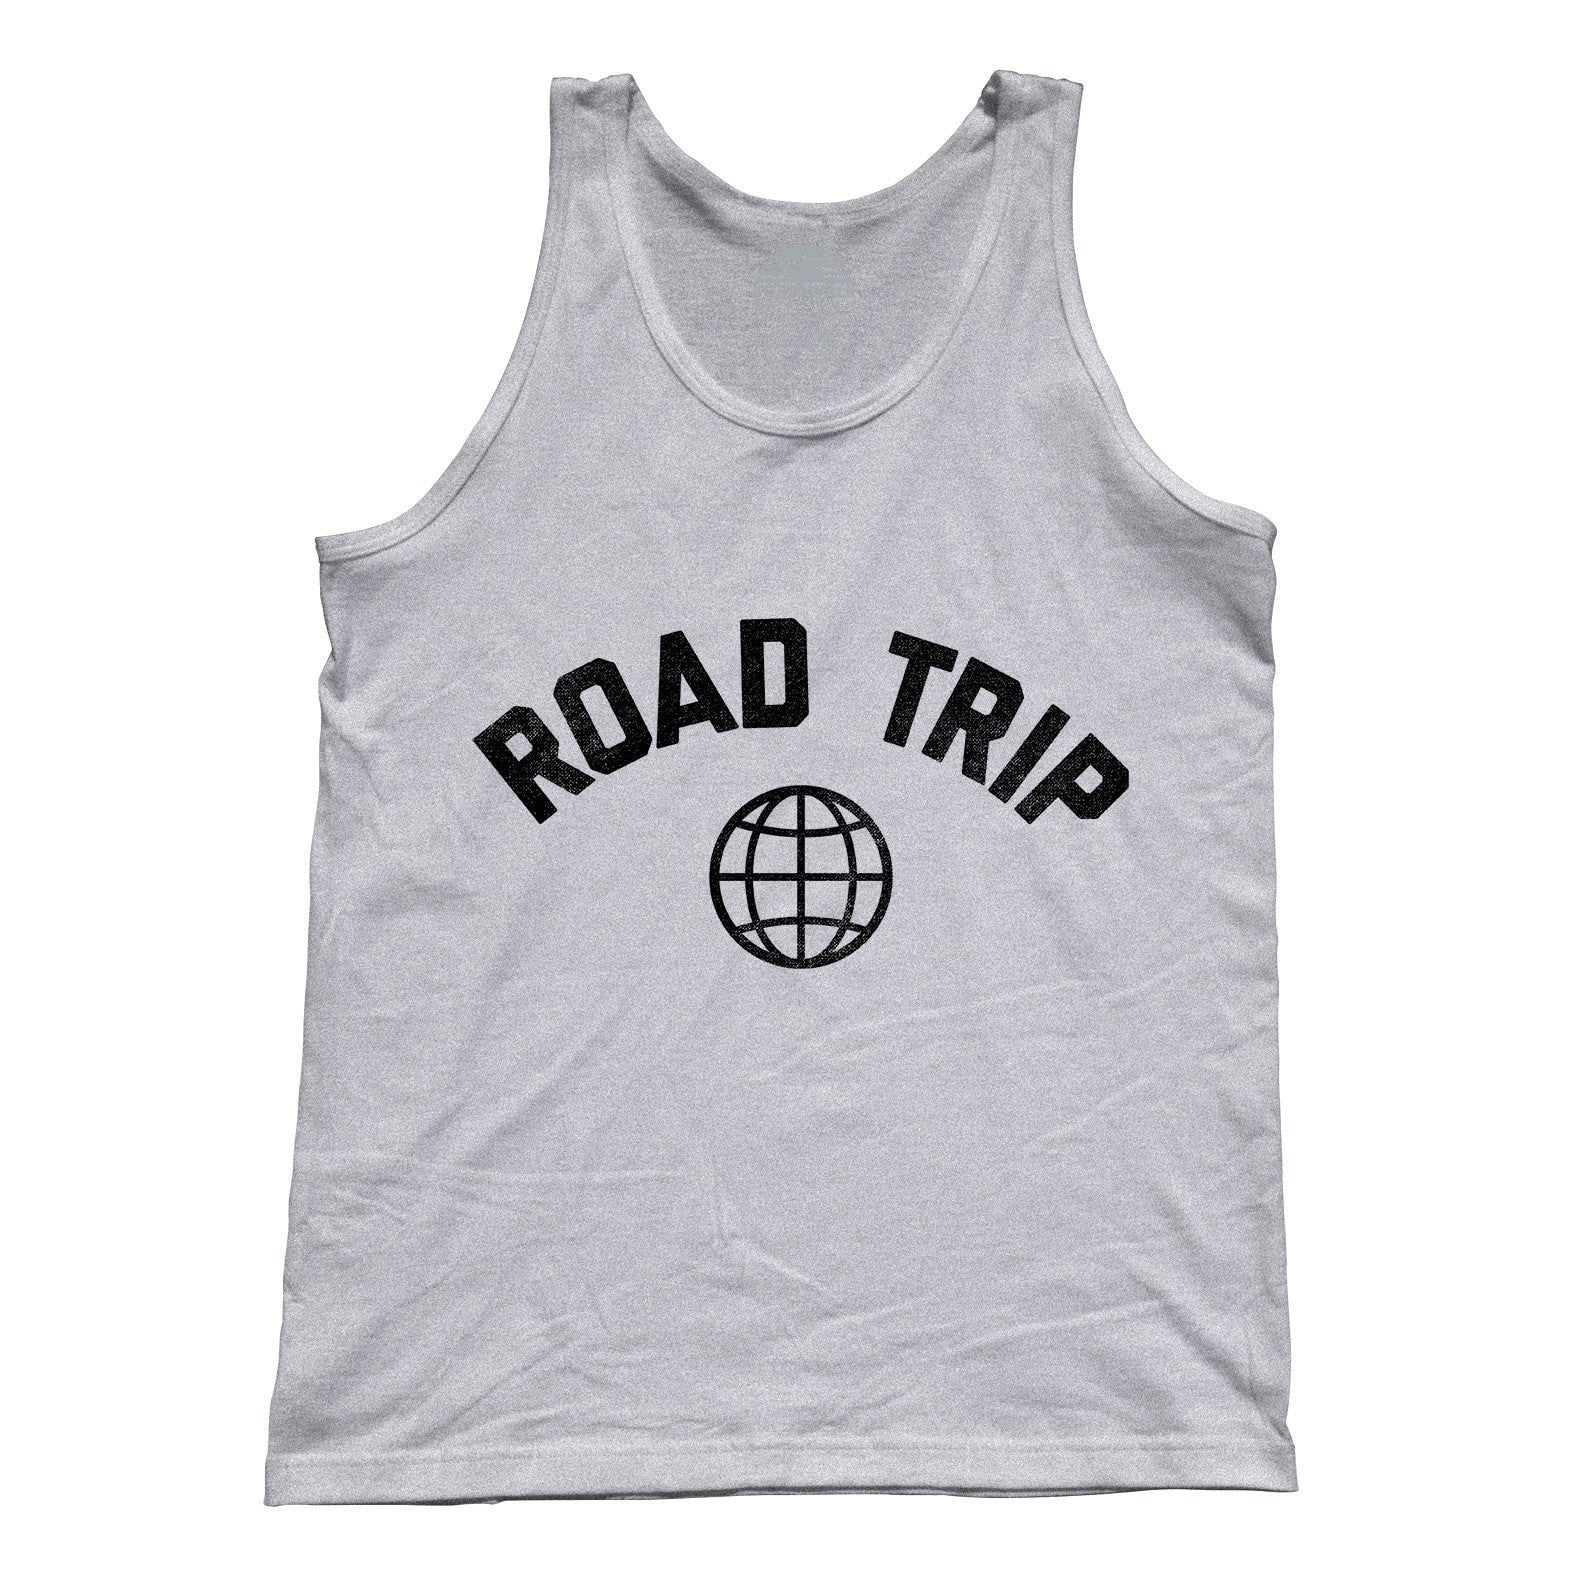 Unisex Road Trip Tank Top Retro Athletic Travel